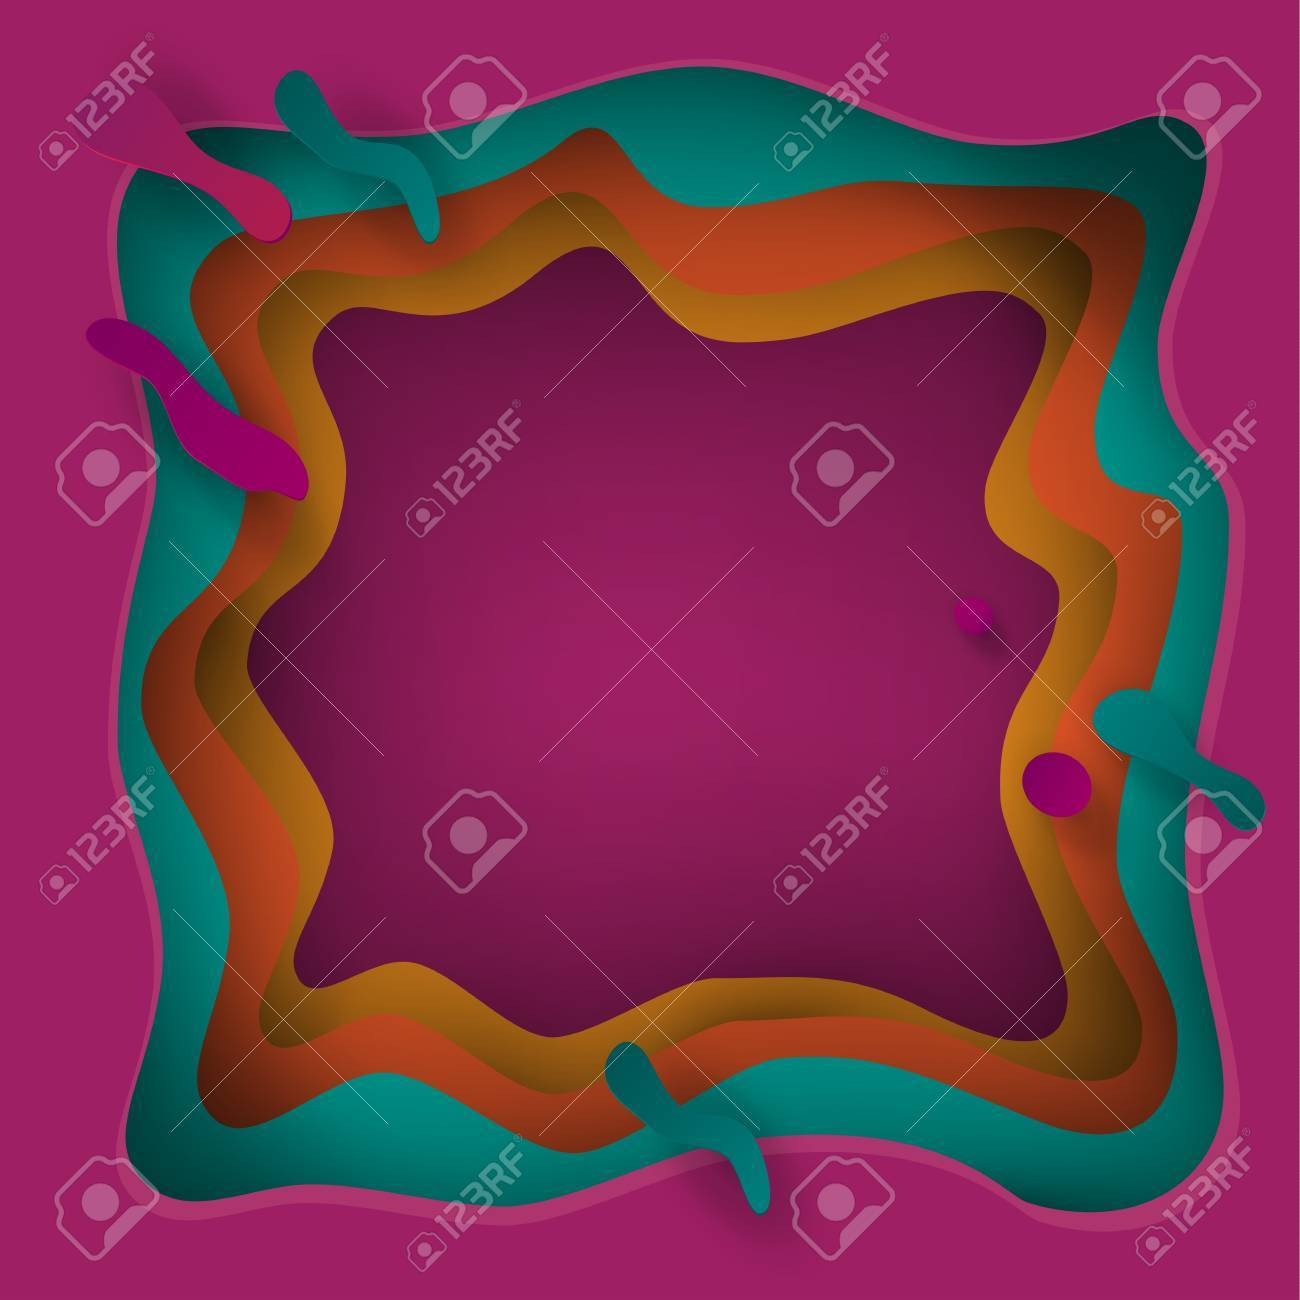 cut paper artistic abstract background, modern wallpaper, greeting